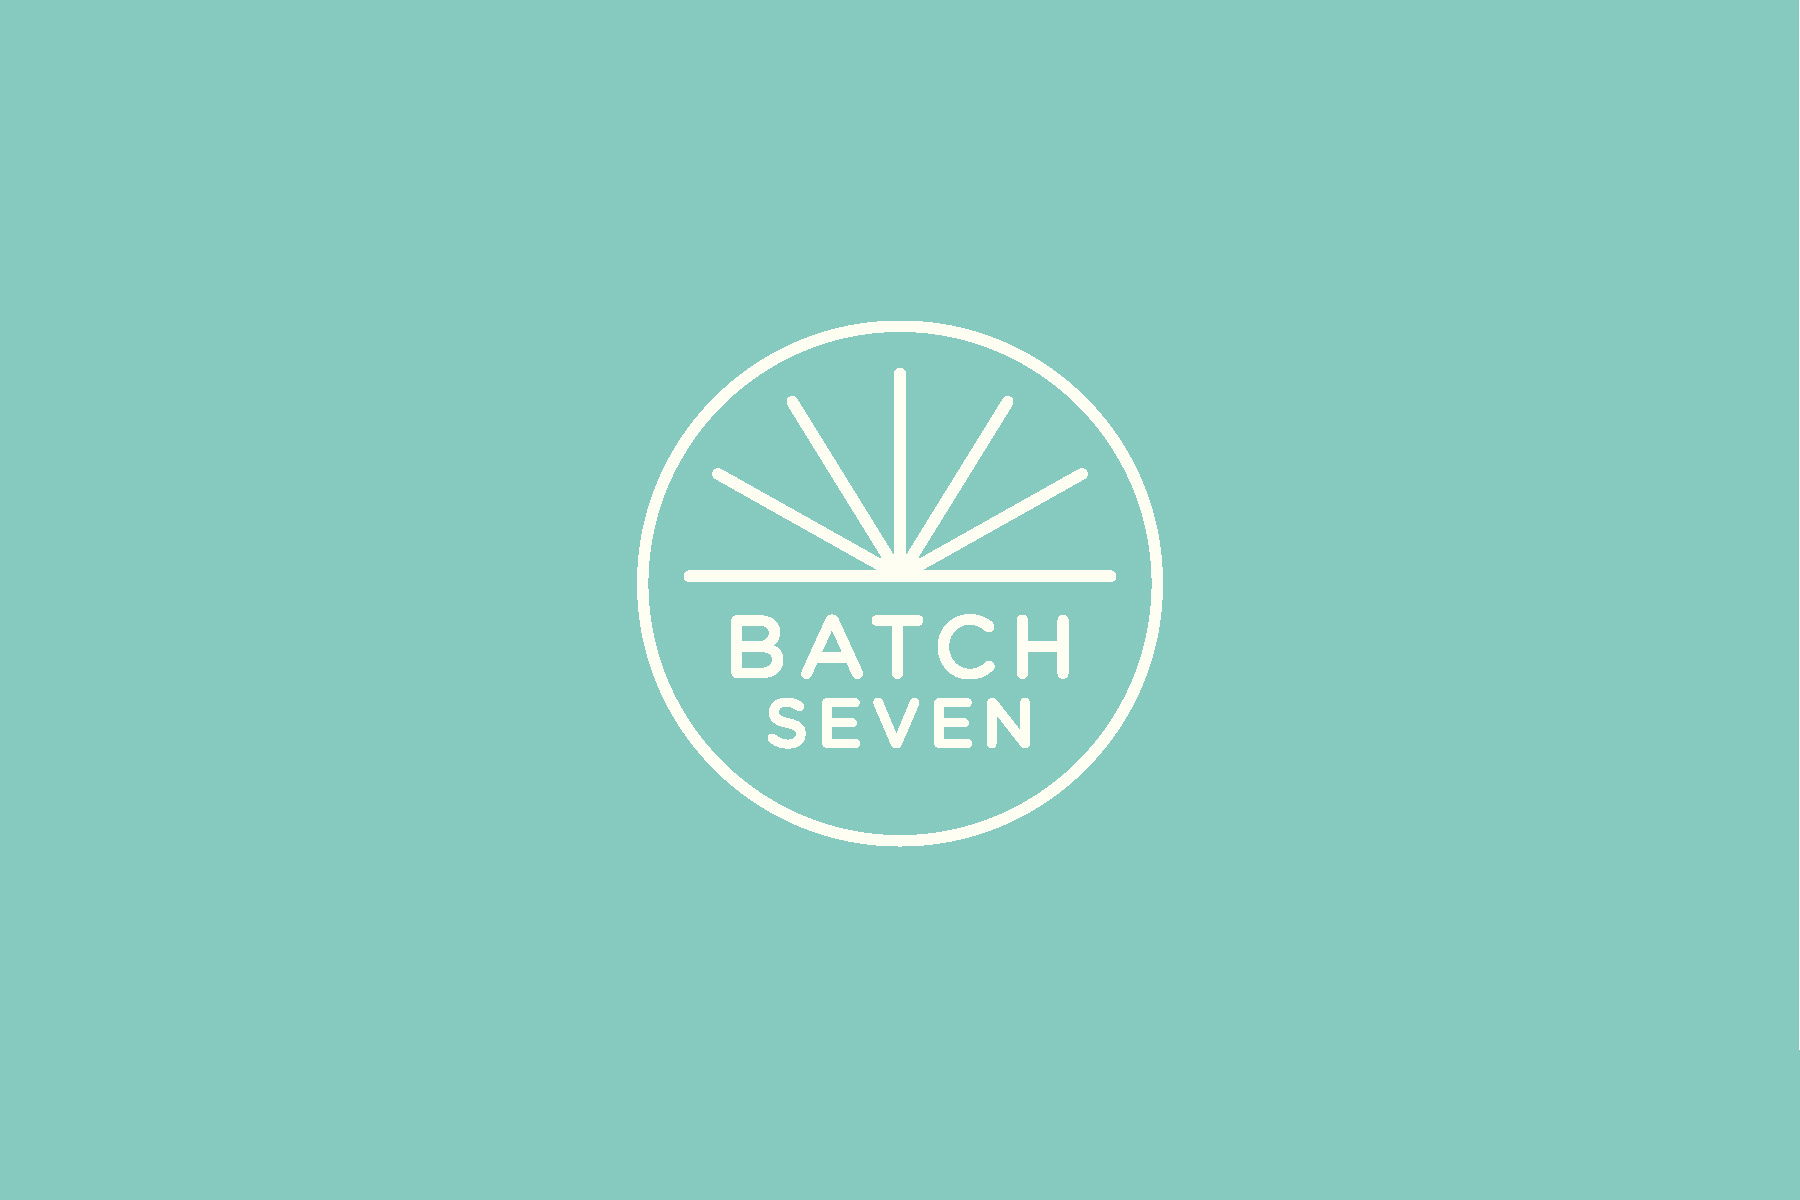 BatchSeven_Identity_Guidelines_Page_03.jpg